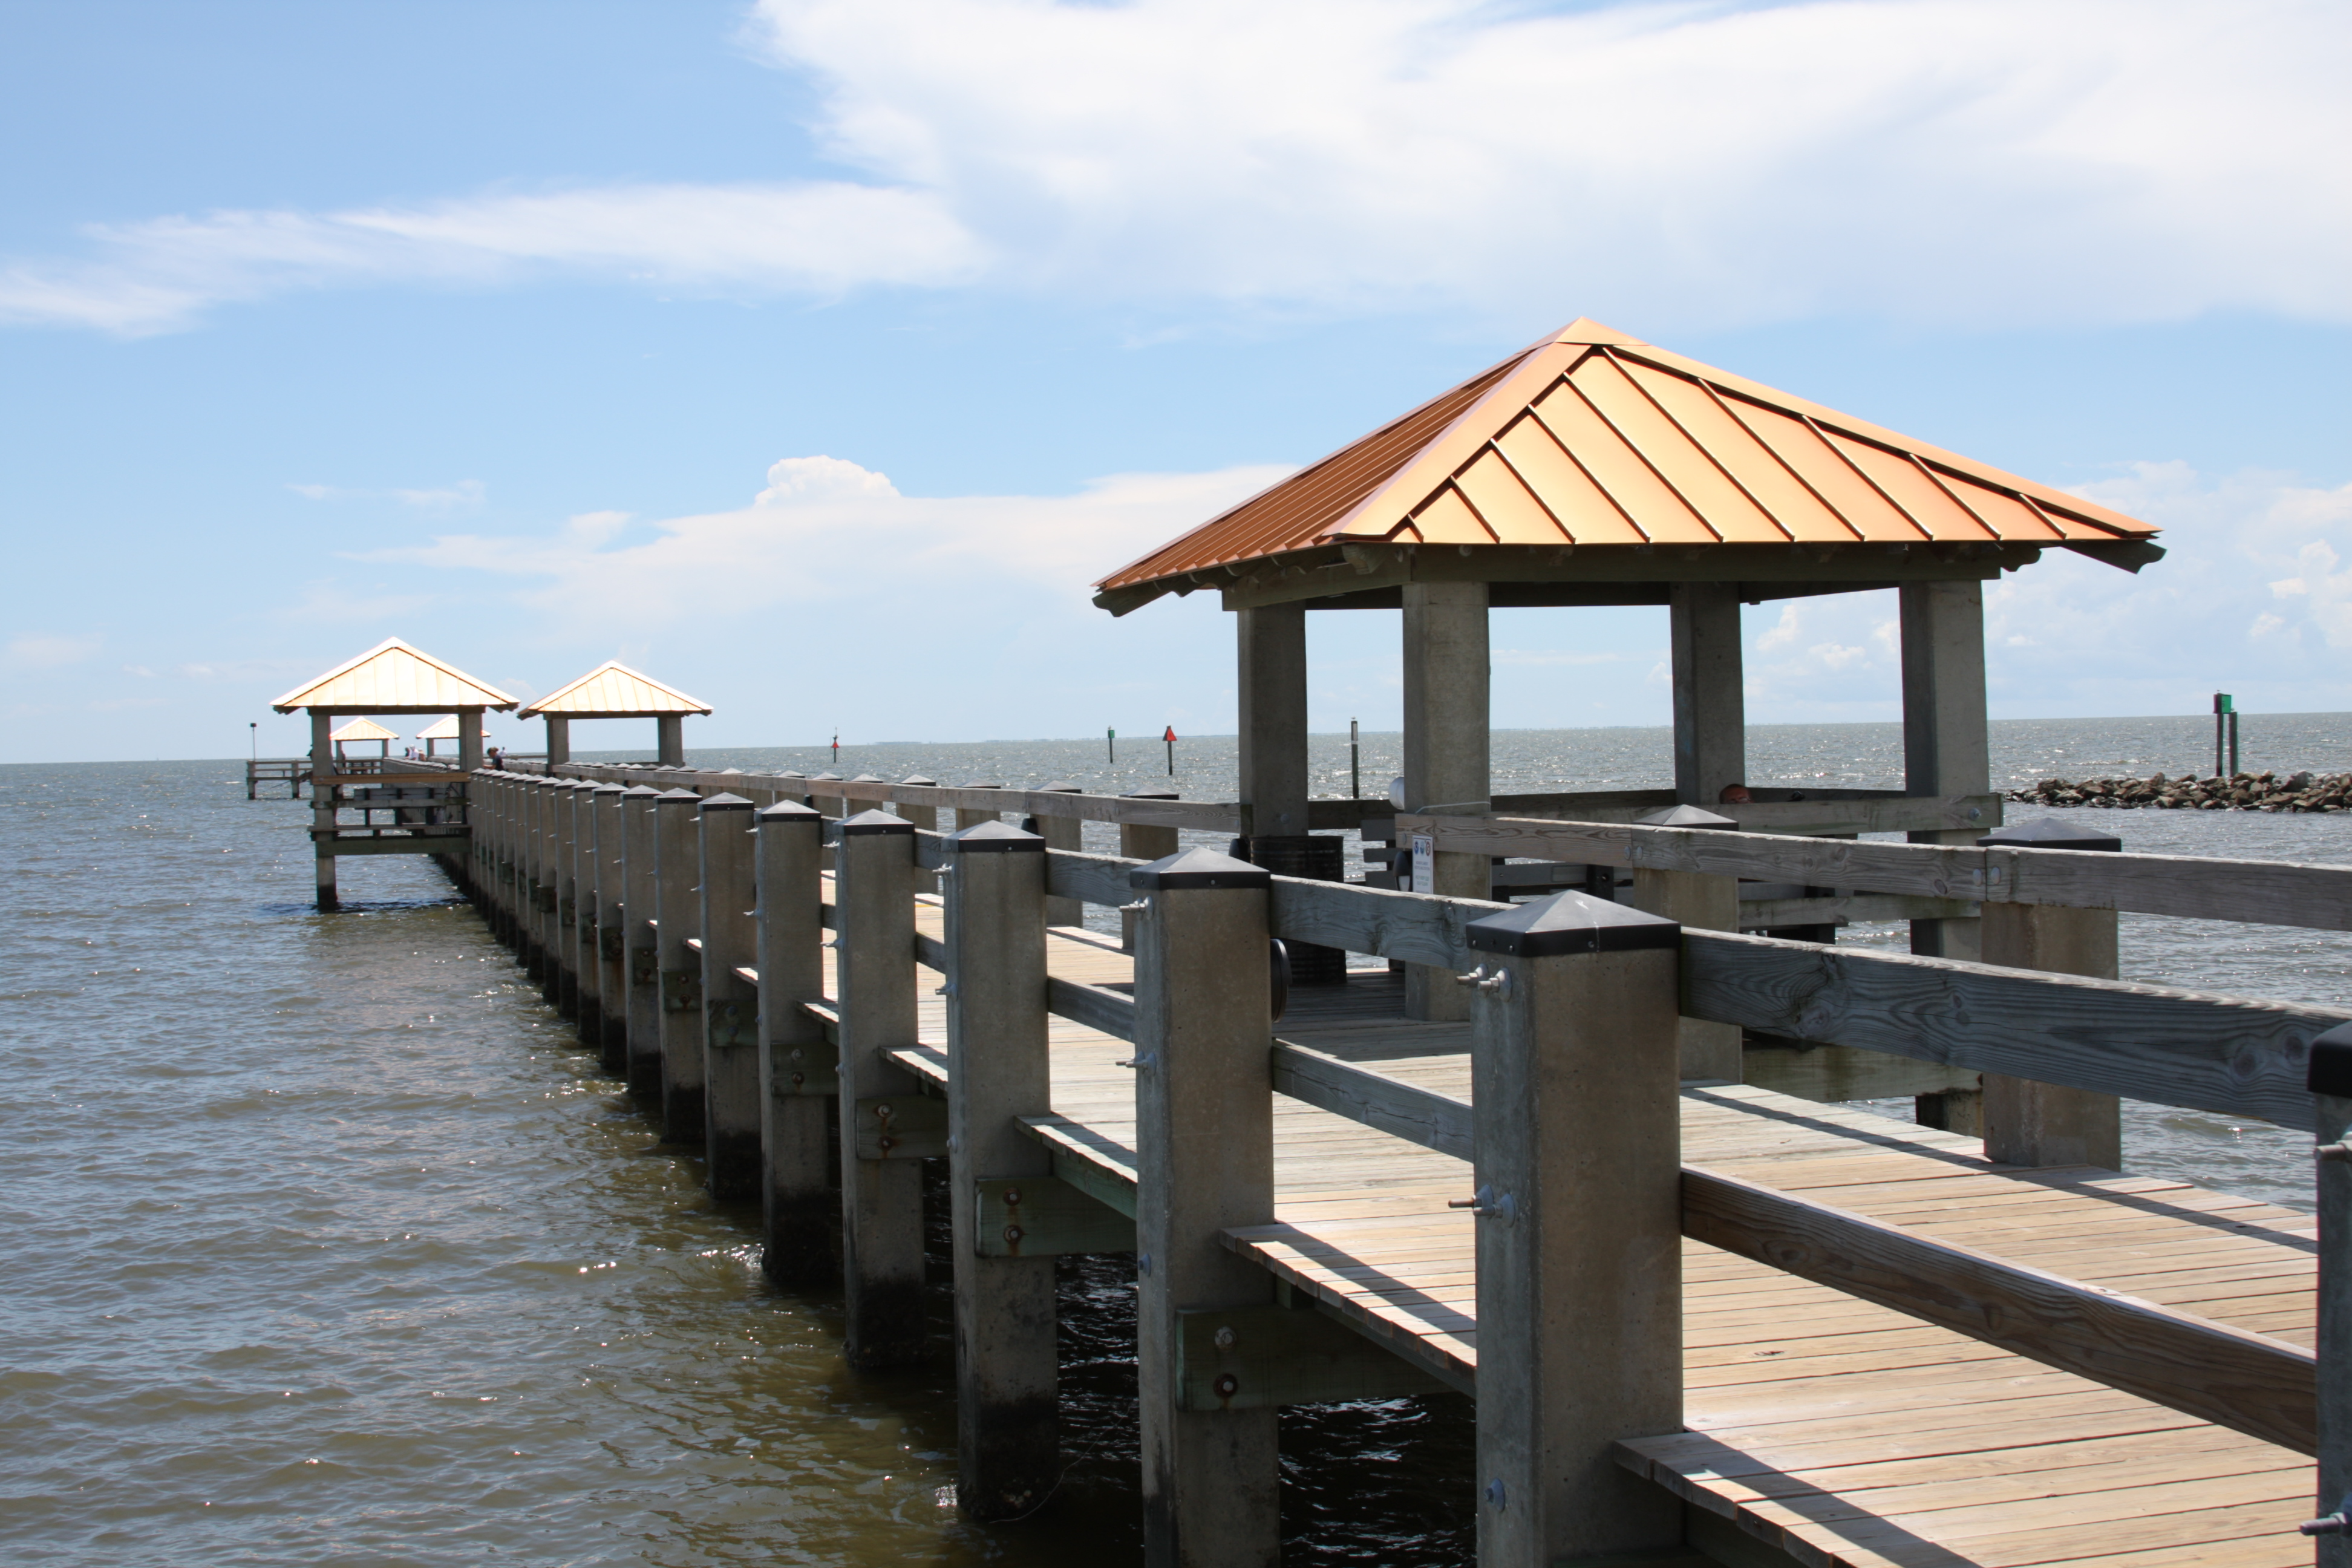 Gulfport Cities News Videos Images Websites Wiki